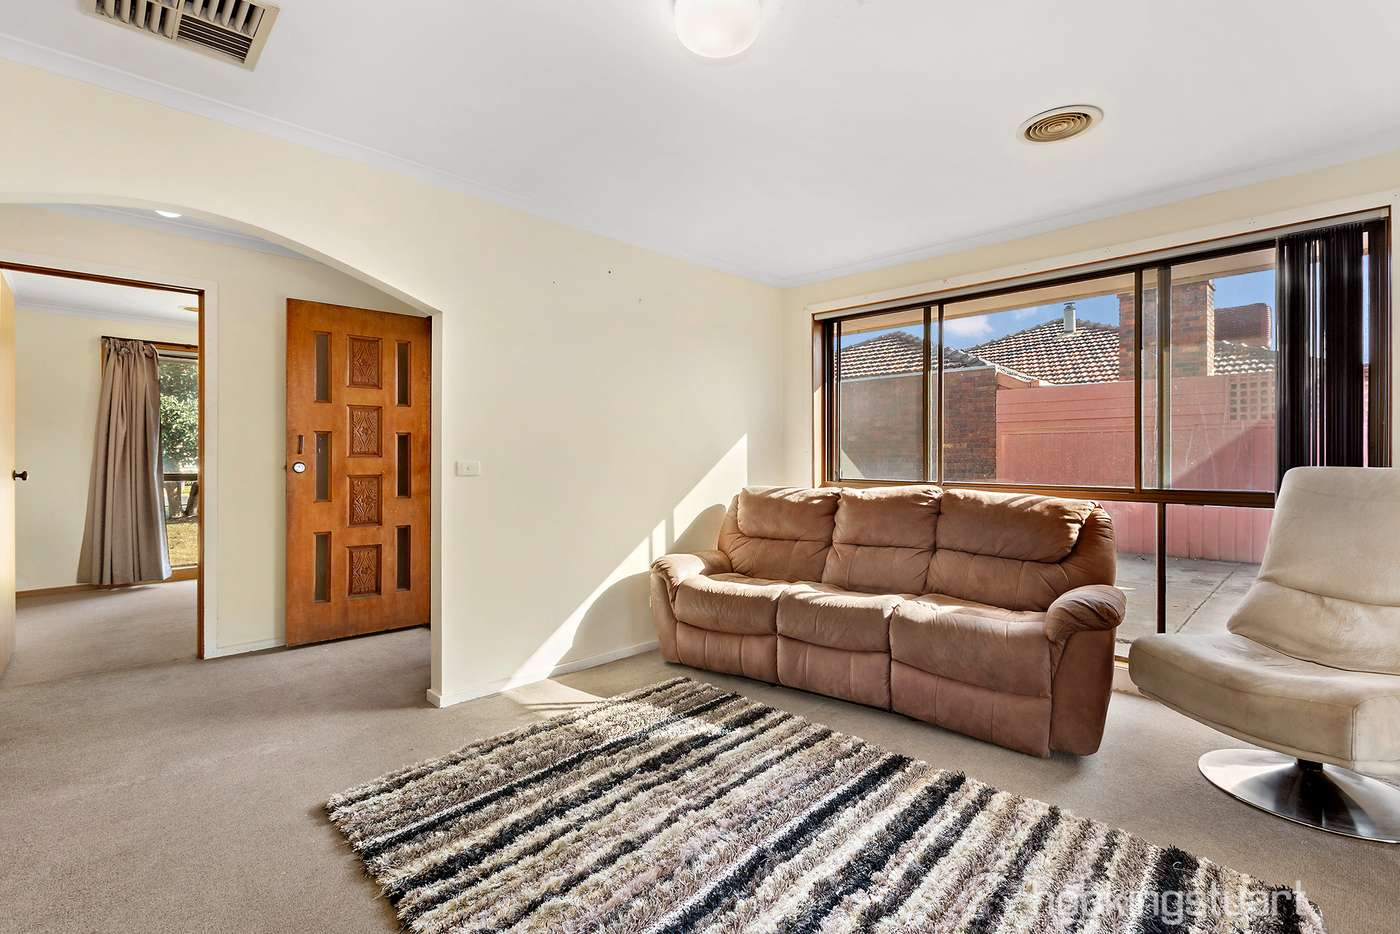 Sixth view of Homely house listing, 2 Patton Court, Altona Meadows VIC 3028